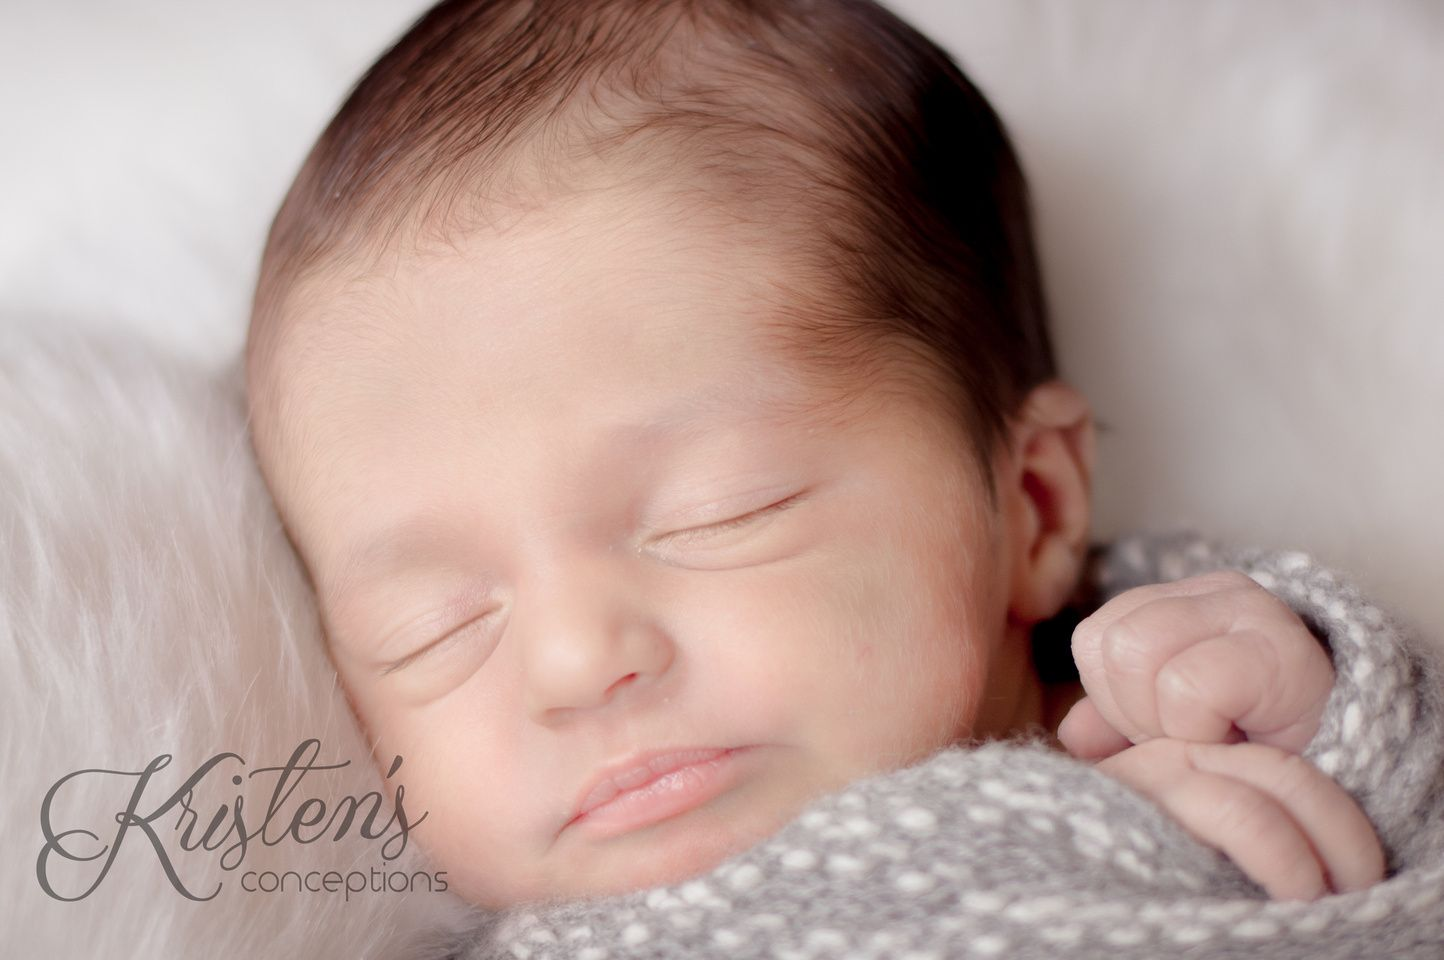 Asheville baby photography: Kristen's Conceptions: Asheville newborn photography: Fresh&Styled